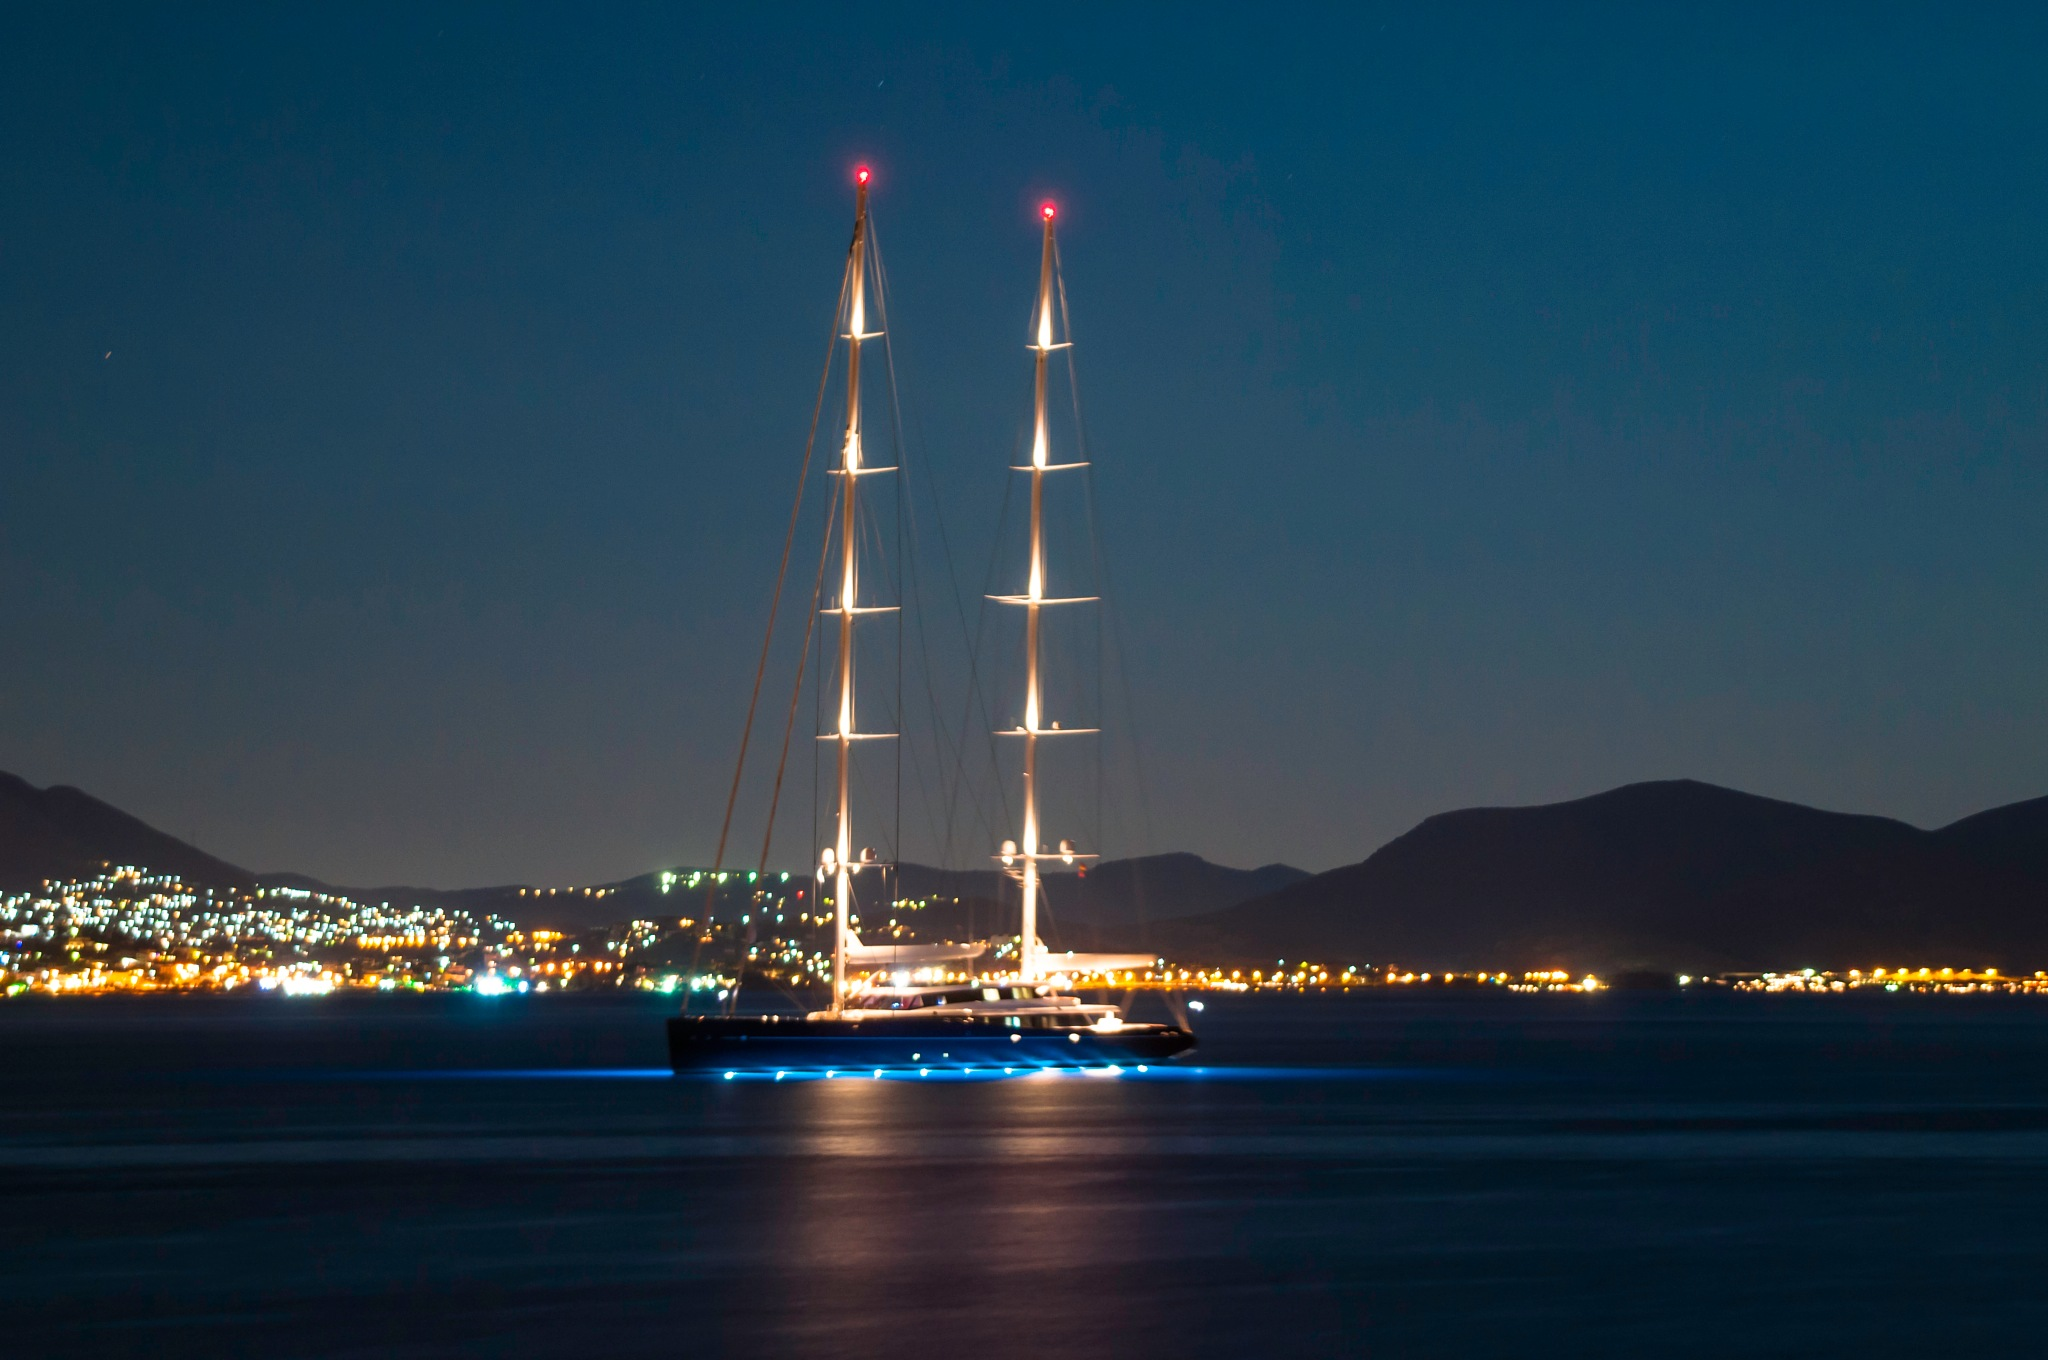 Ship with sails at night by stratos